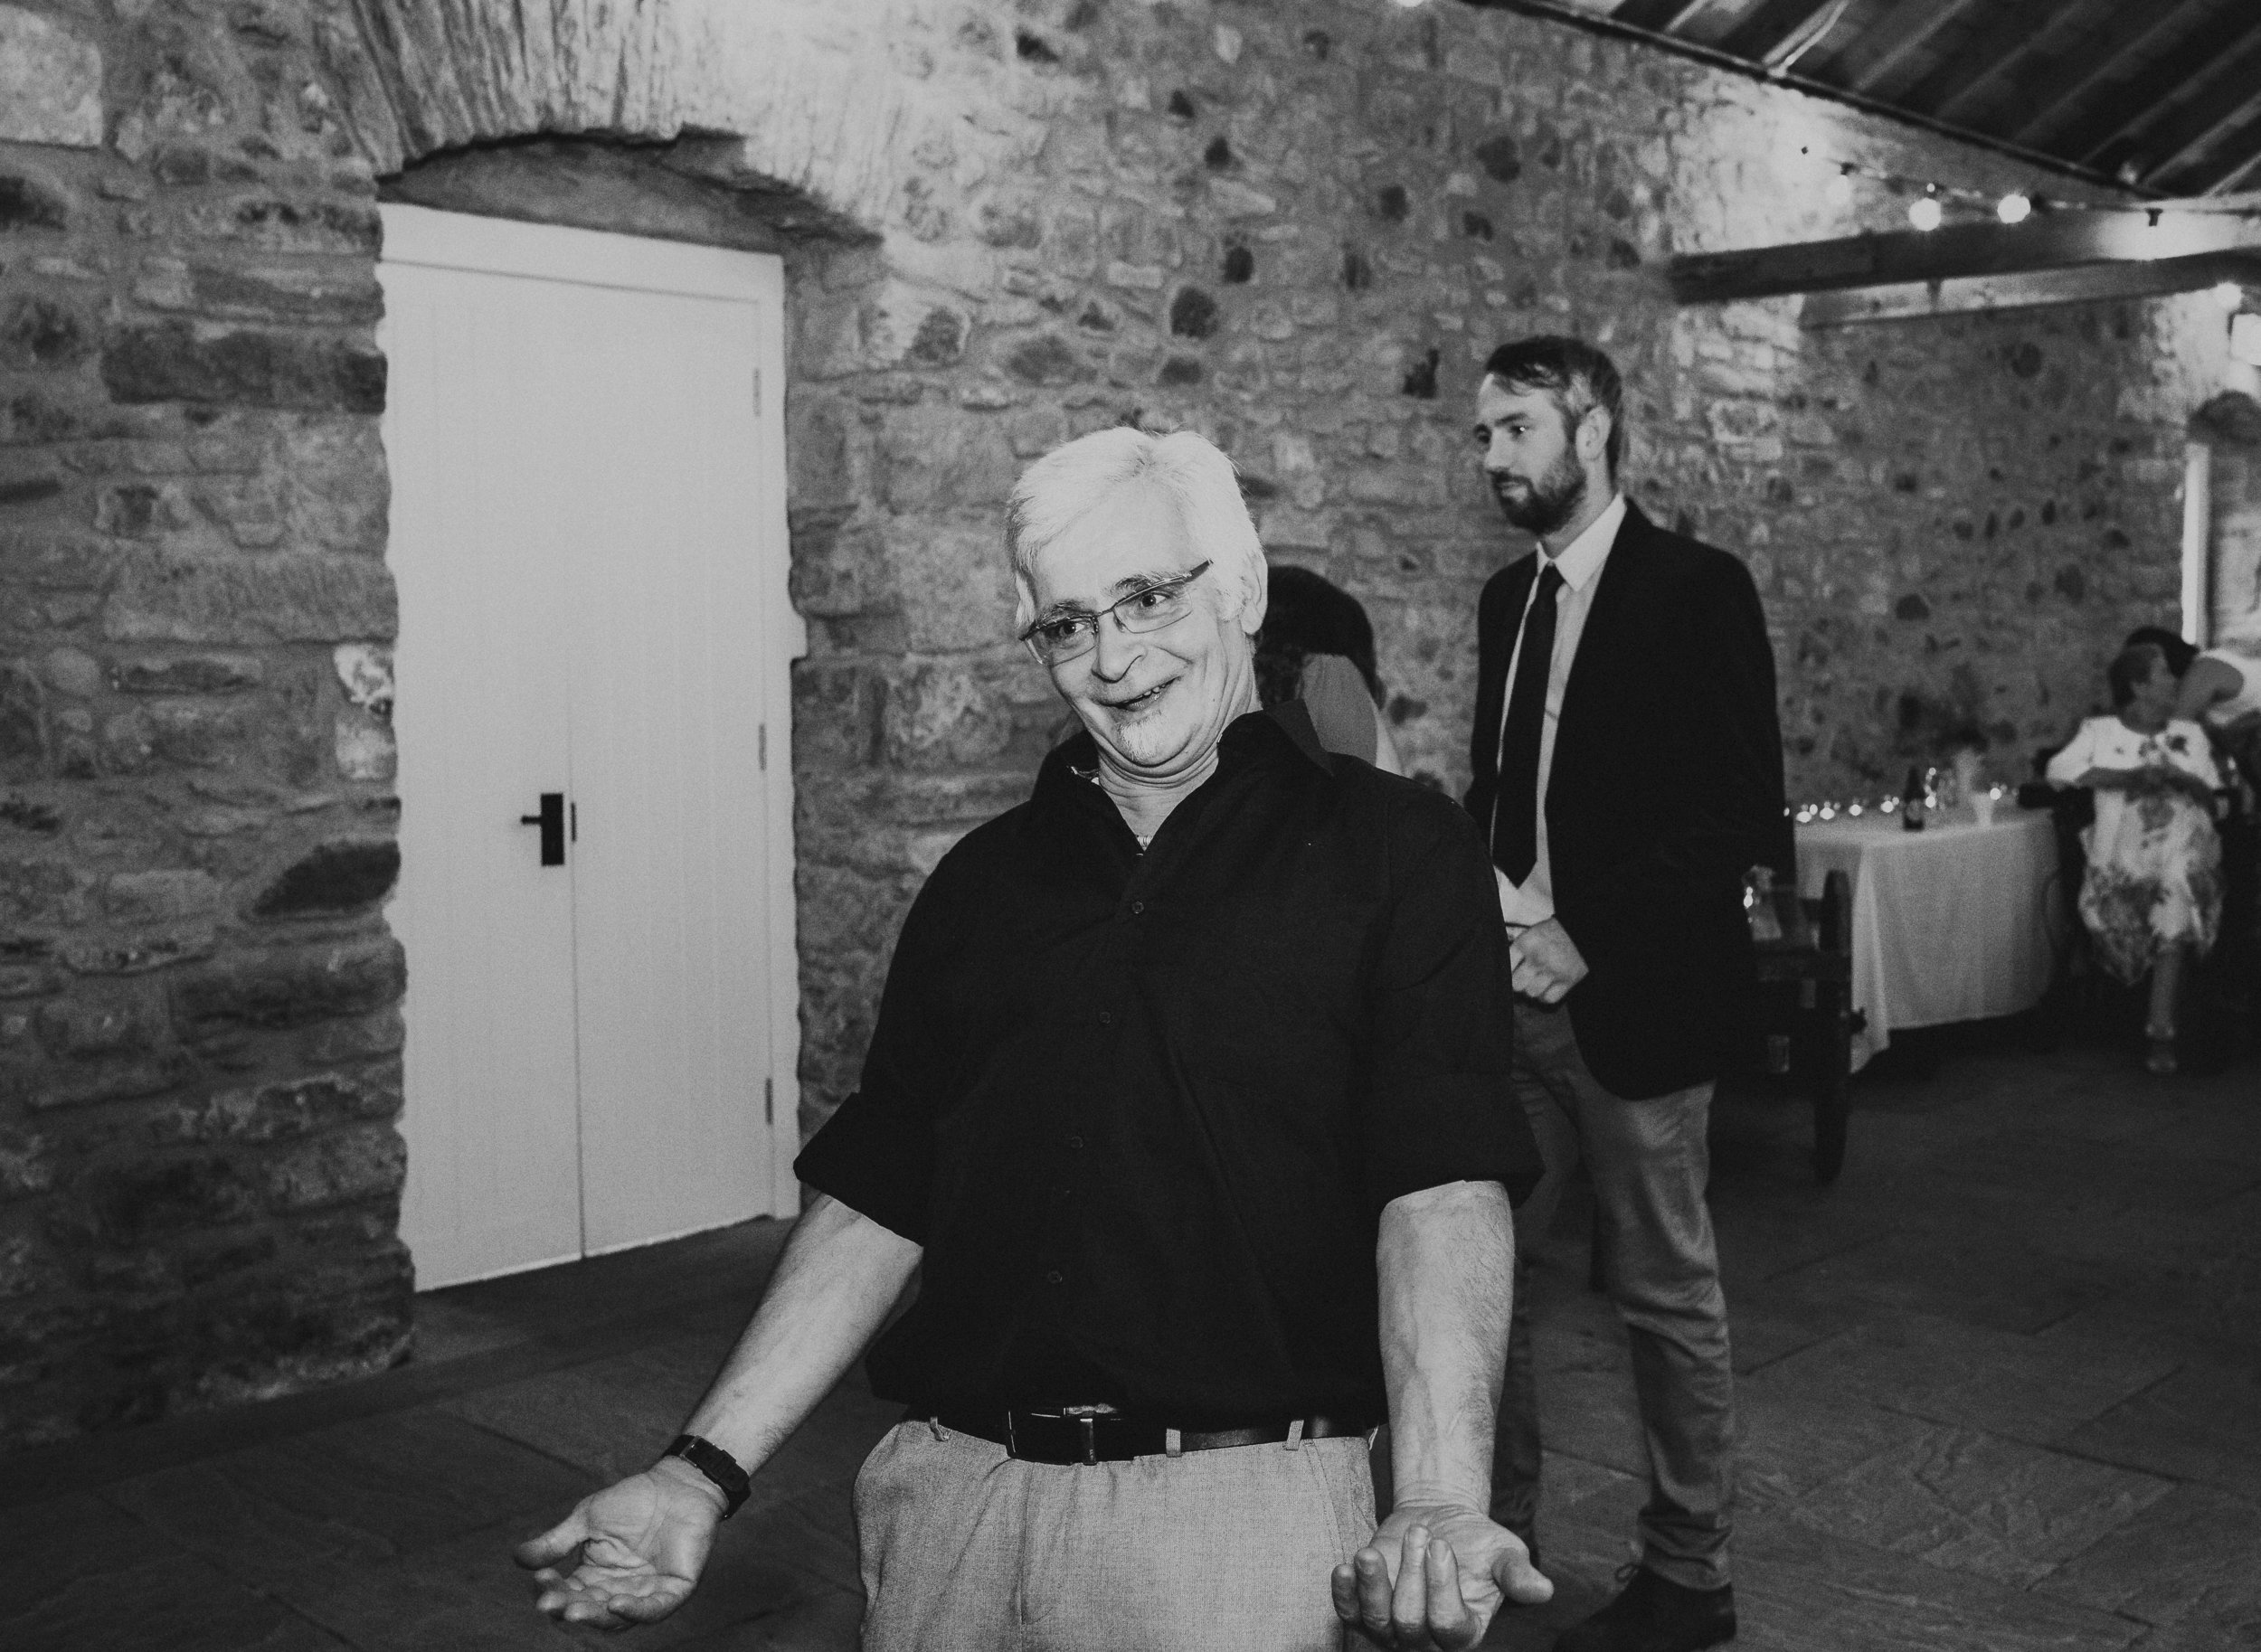 PJ_PHILLIPS_PHOTOGRAPHY_EDINBURGH_WEDDERBURN_BARNS_WEDDING_EDINBURGH_WEDDING_PHOTOGRAPHER_144.jpg